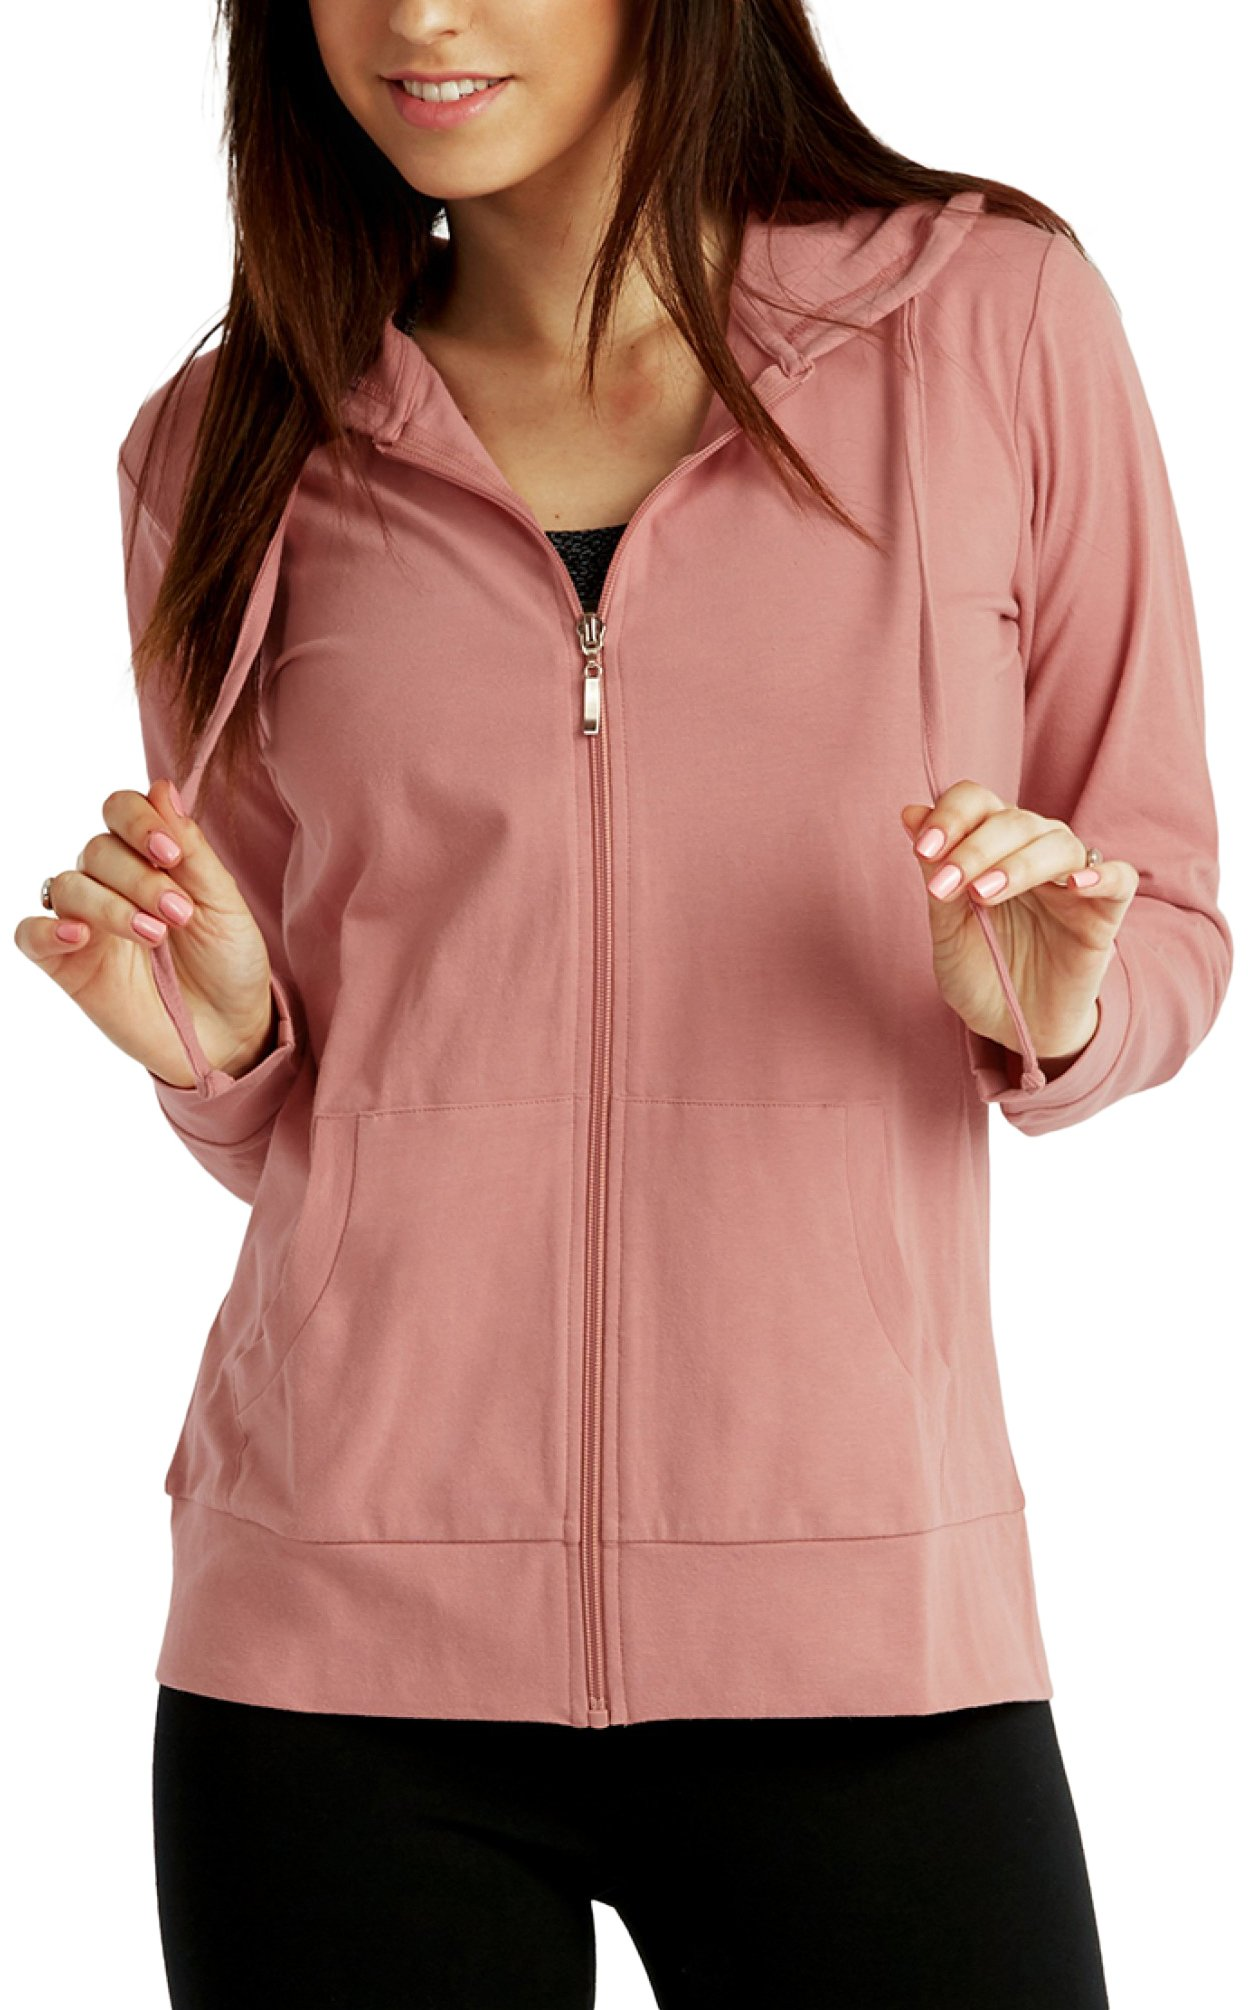 ToBeInStyle Women's Thin Fabric L.S. Zip up Hoodie - Mauve - Small